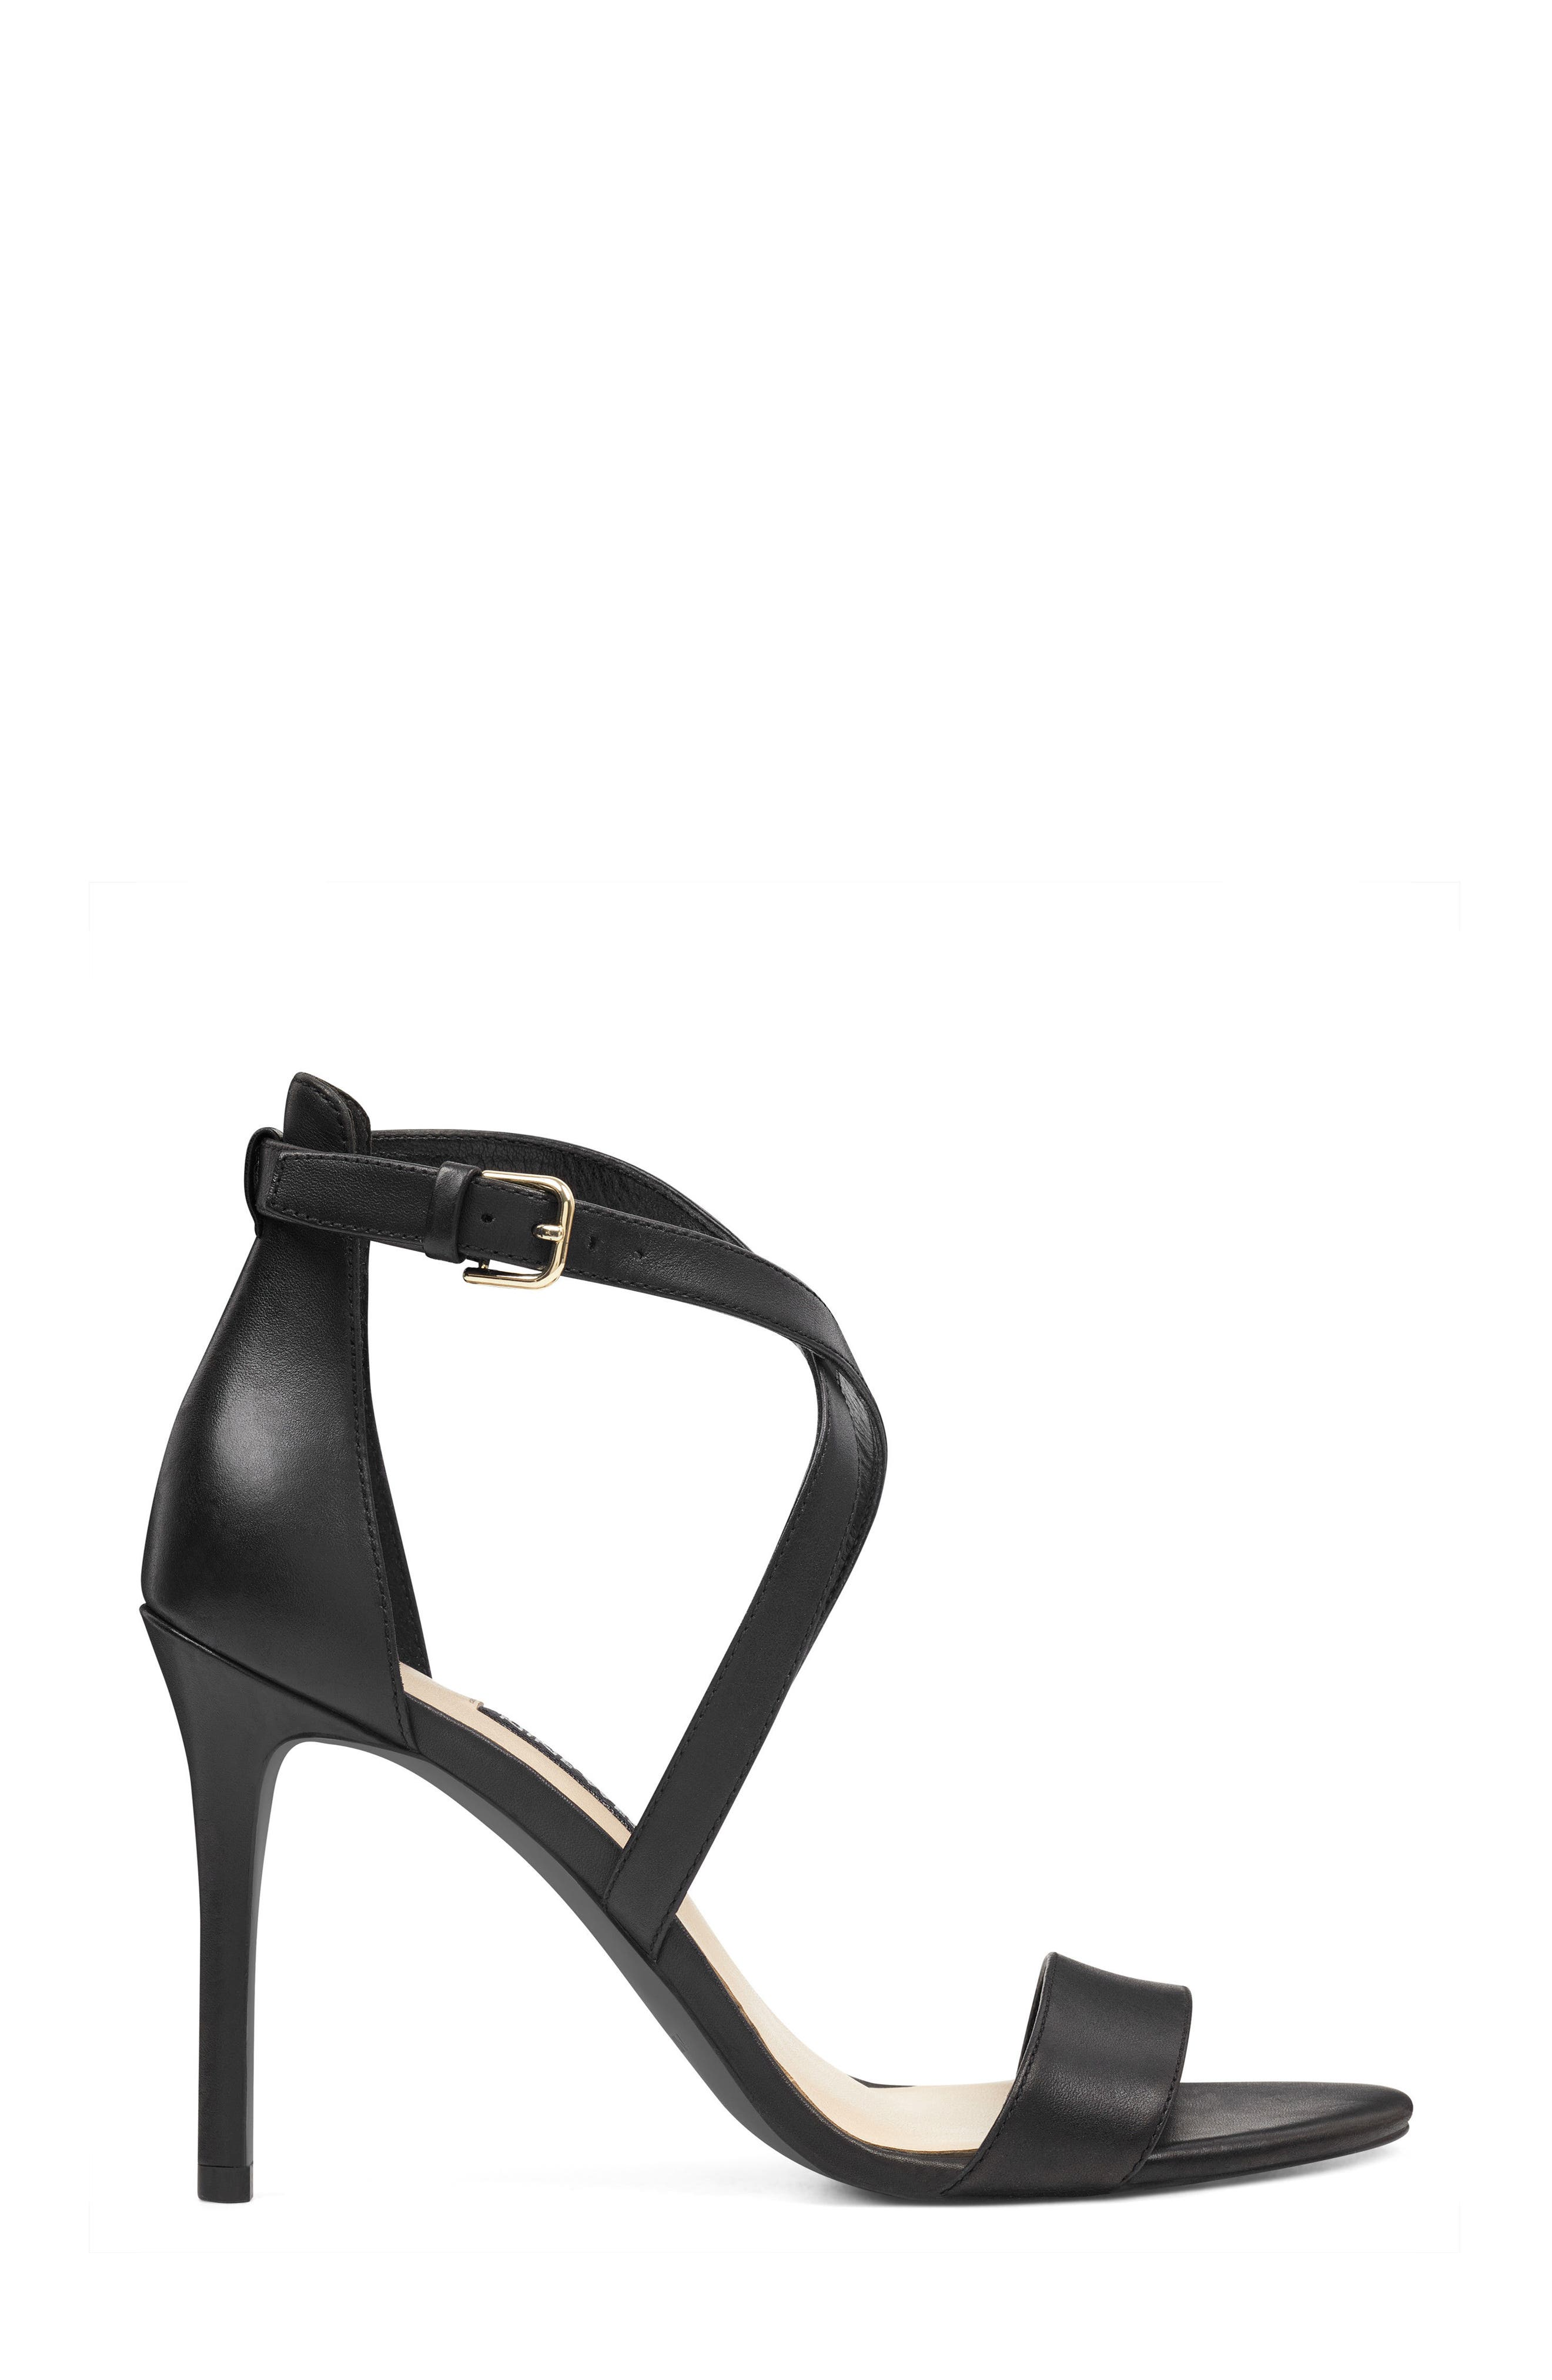 Mydebut Strappy Sandal,                             Alternate thumbnail 3, color,                             BLACK LEATHER